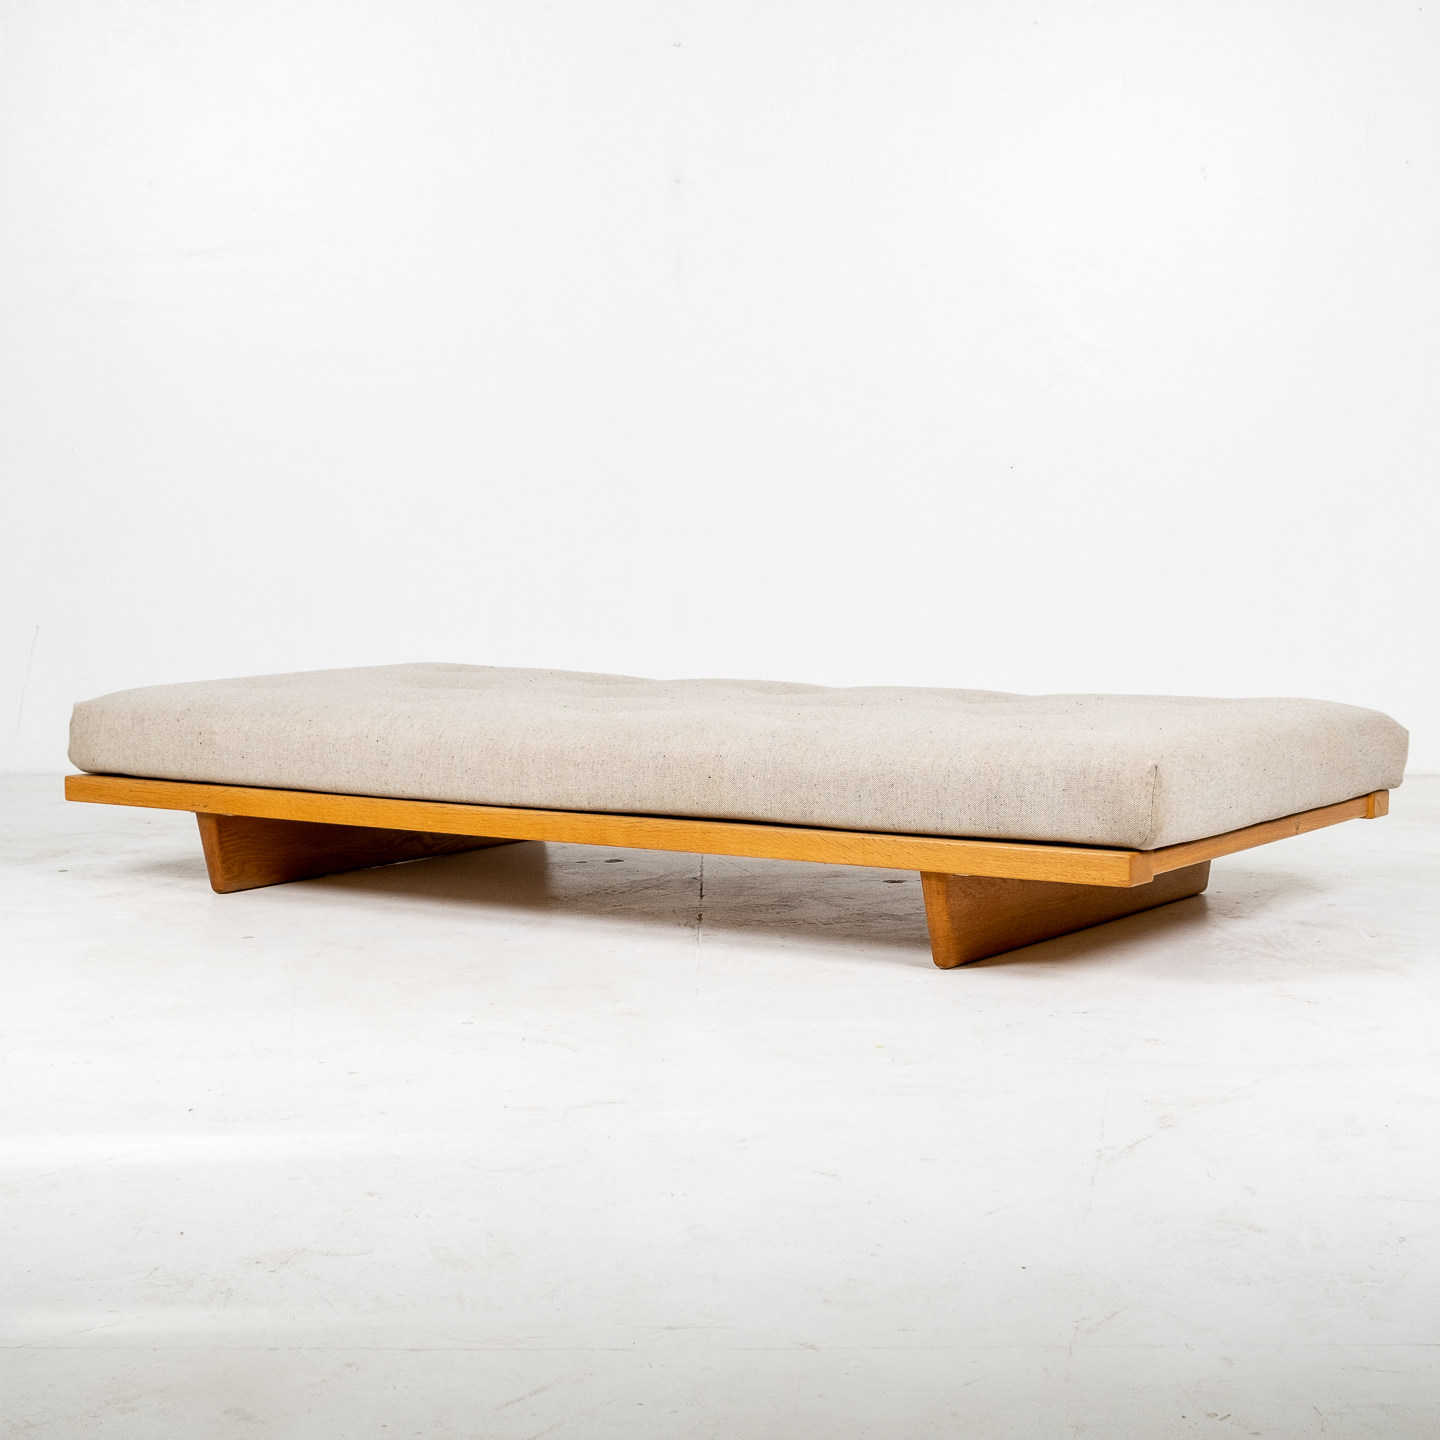 Model 192 Daybed By Borge Mogensen For Fredericia Stolefabrik In Oak And Instyle Upholstery, 1958, Denmark 12